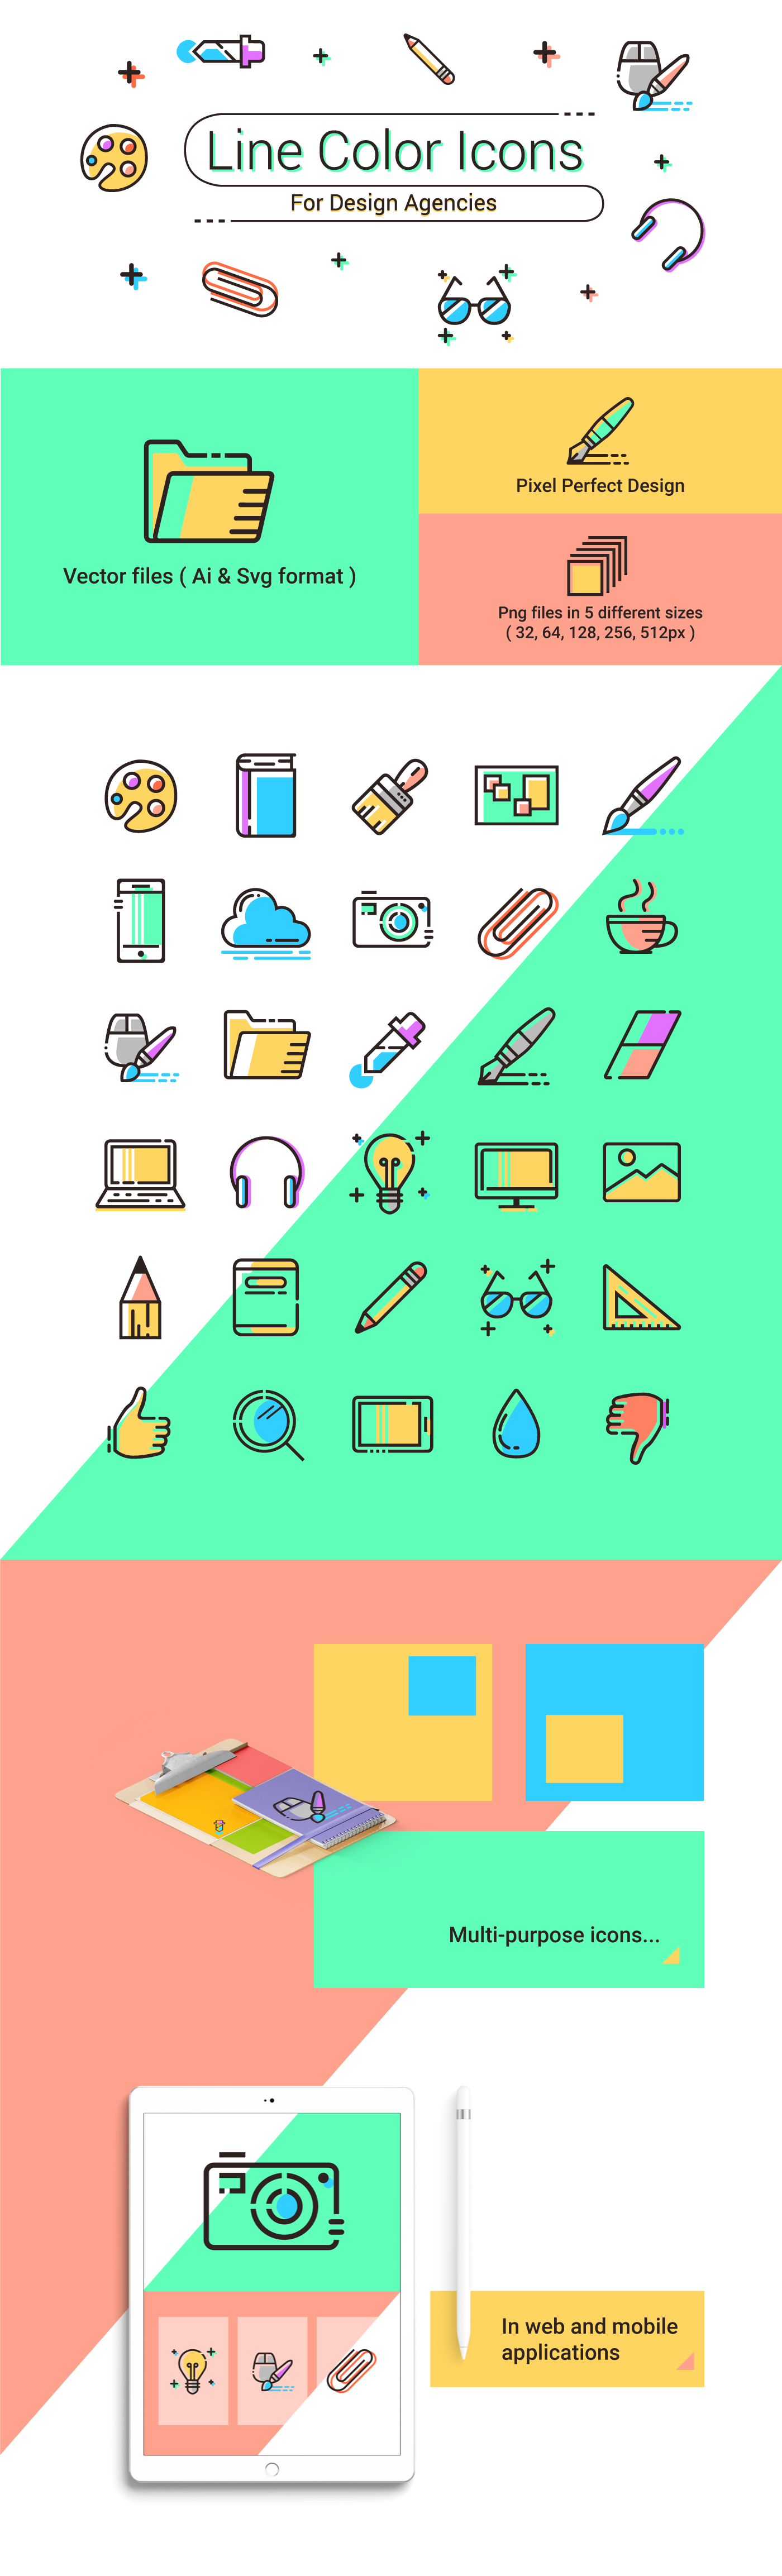 design_agencies_free_icon_set